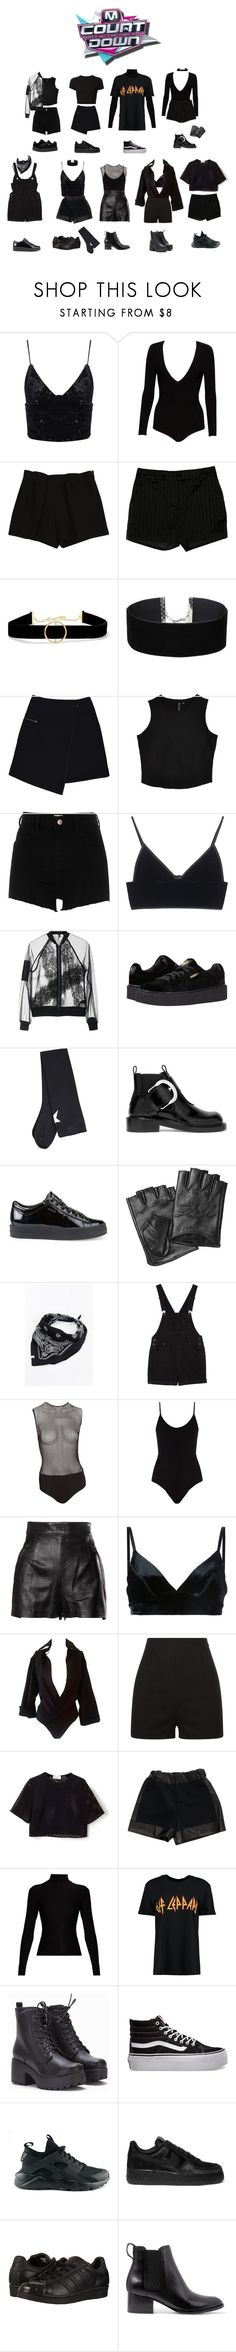 """""""BANGBANG """"The 7th Sense"""" — MCountdown"""" by bbofficial ❤ liked on Polyvore featuring Alice + Olivia, Chloé, Rachel Zoe, Anissa Kermiche, Miss Selfridge, MARC CAIN, River Island, T By Alexander Wang, Topshop and Puma"""